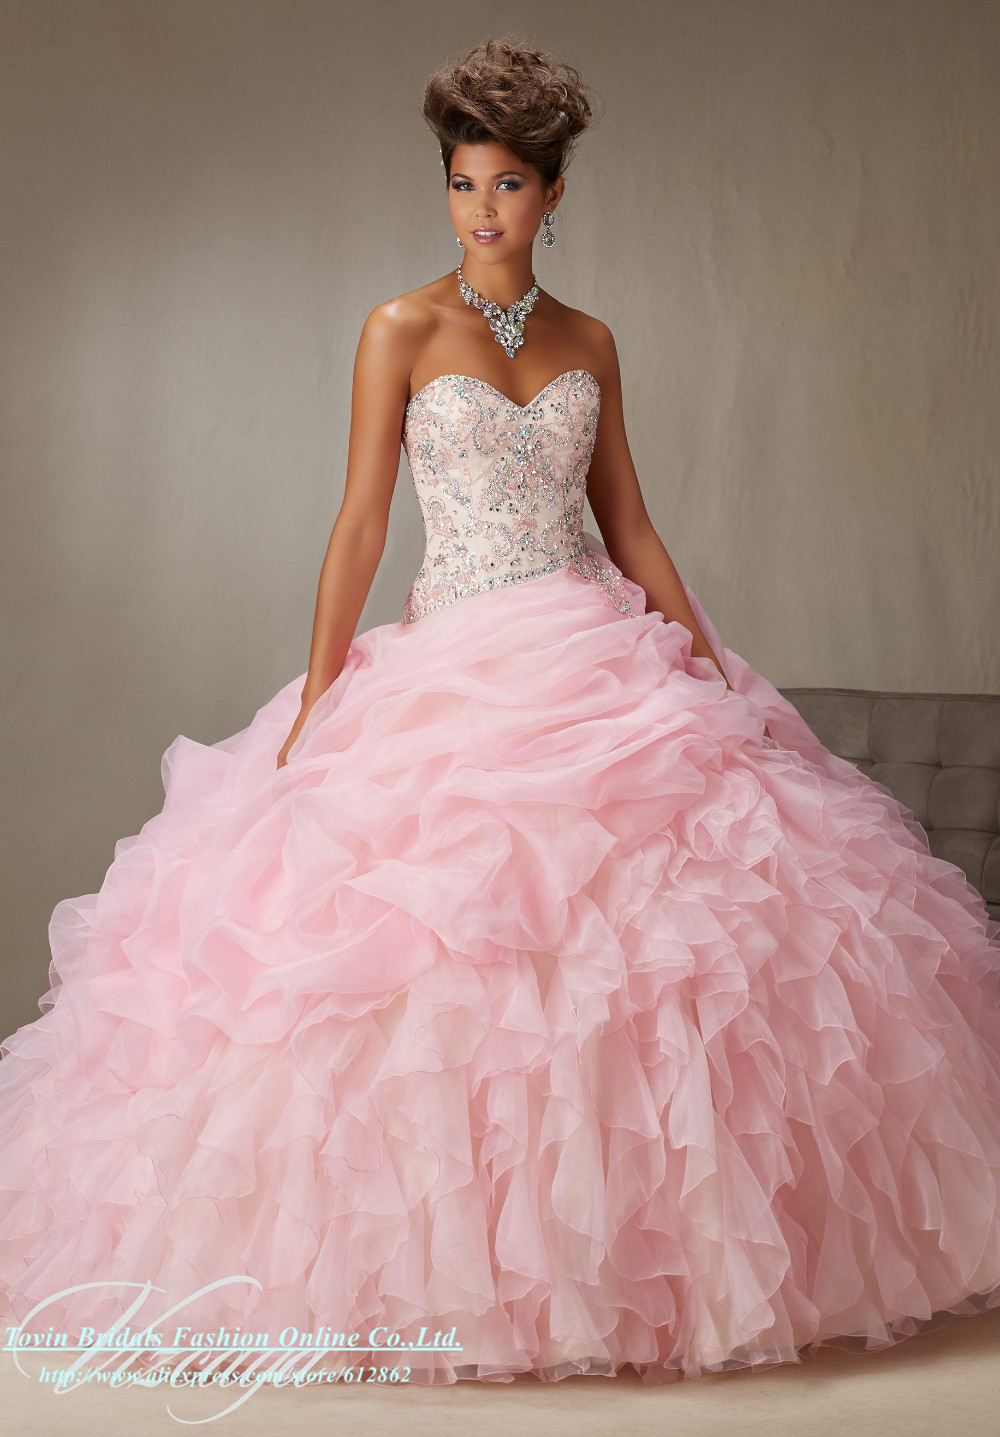 Peach Quinceanera Dresses Customized Ball Gown Pink Red